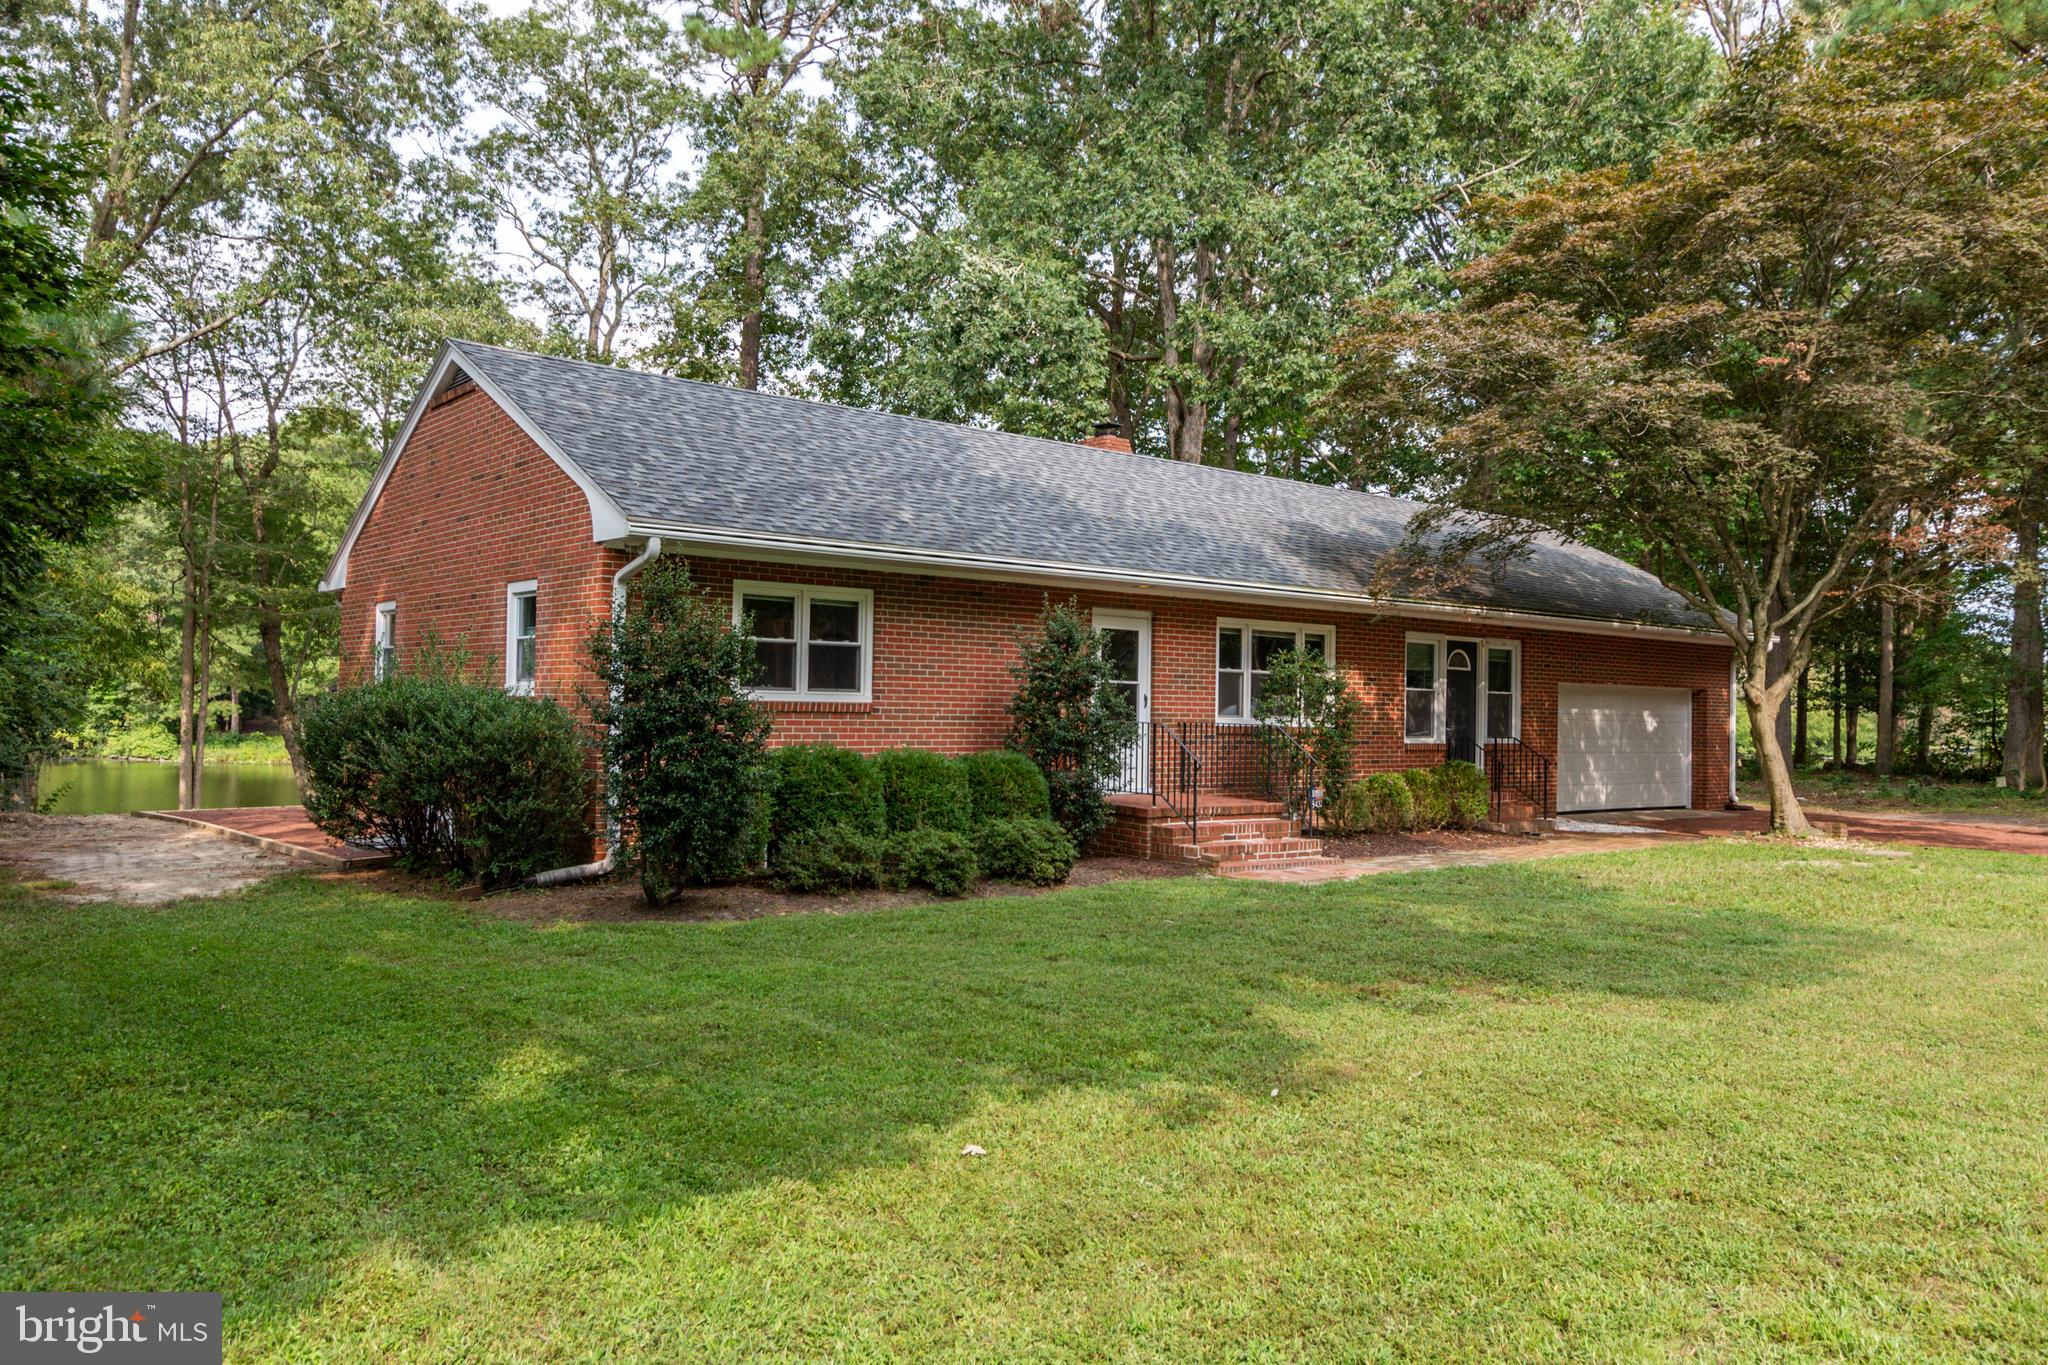 Your Waterfront, Brick Home Awaits! Start your Day Overlooking Leonards Mill Pond with Dock! The Sce